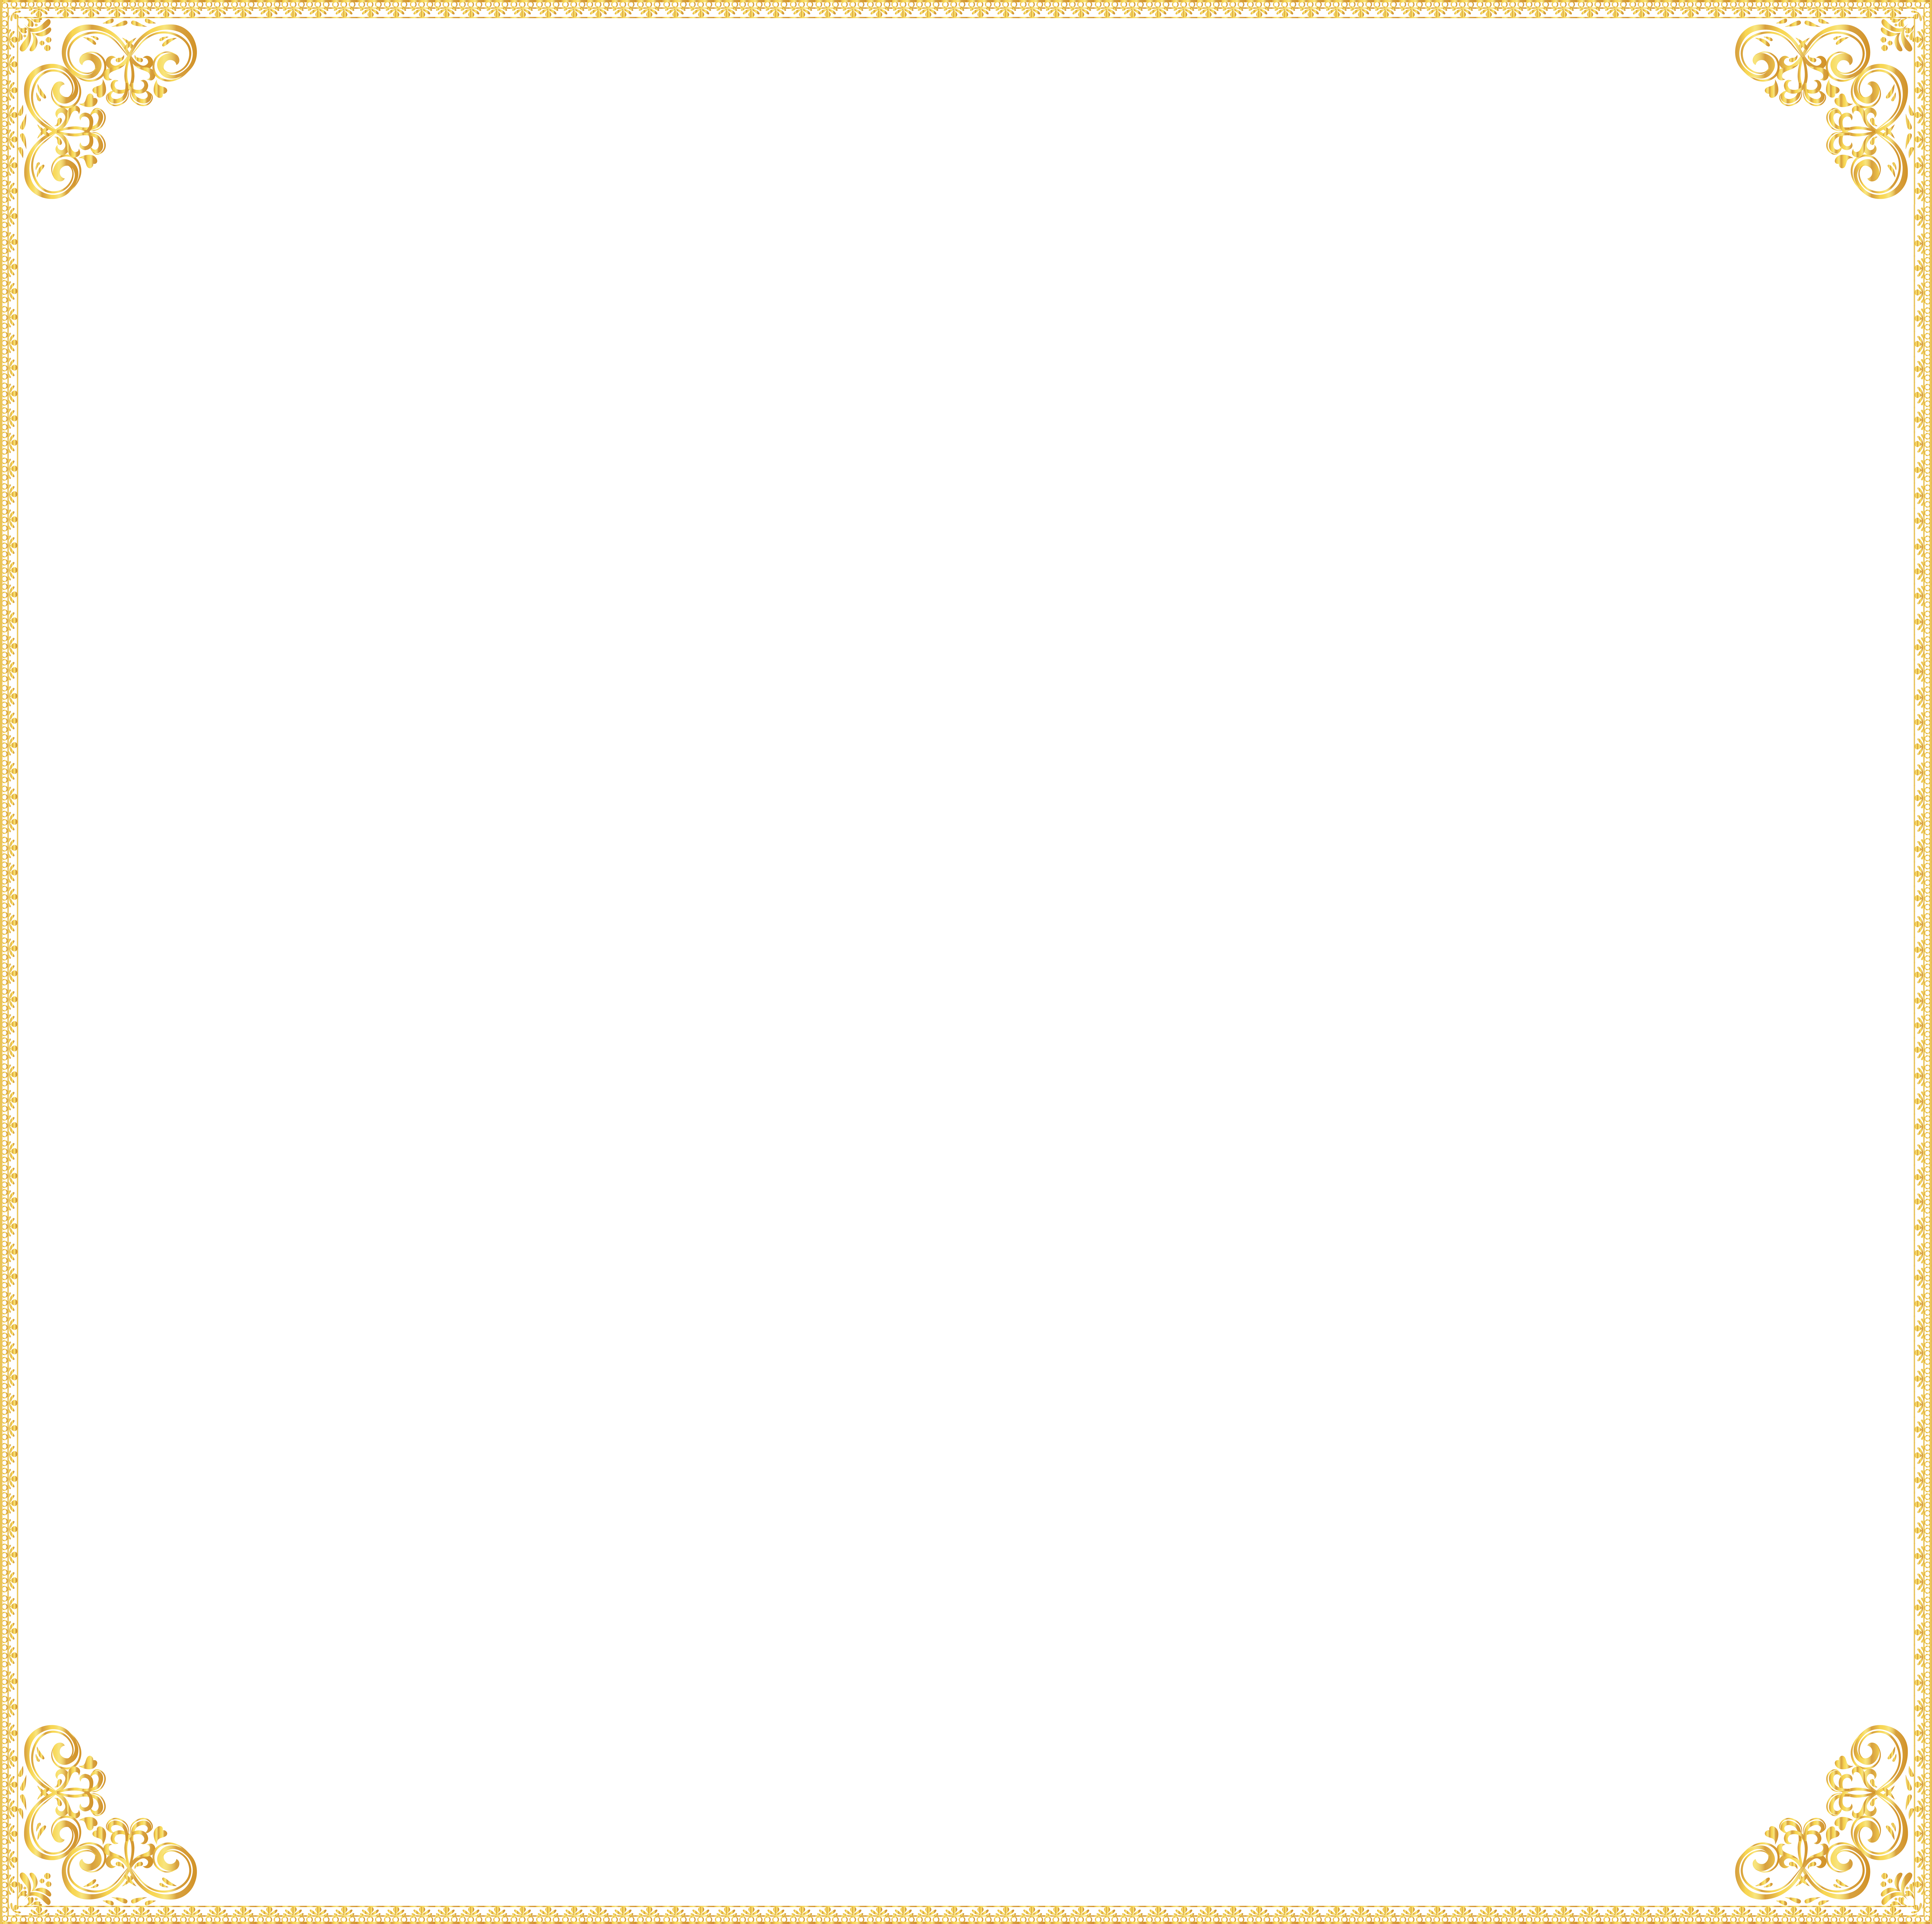 Transparent square clipart picture black and white stock Pattern - Golden Border Frame Transparent Clip Art Image png ... picture black and white stock